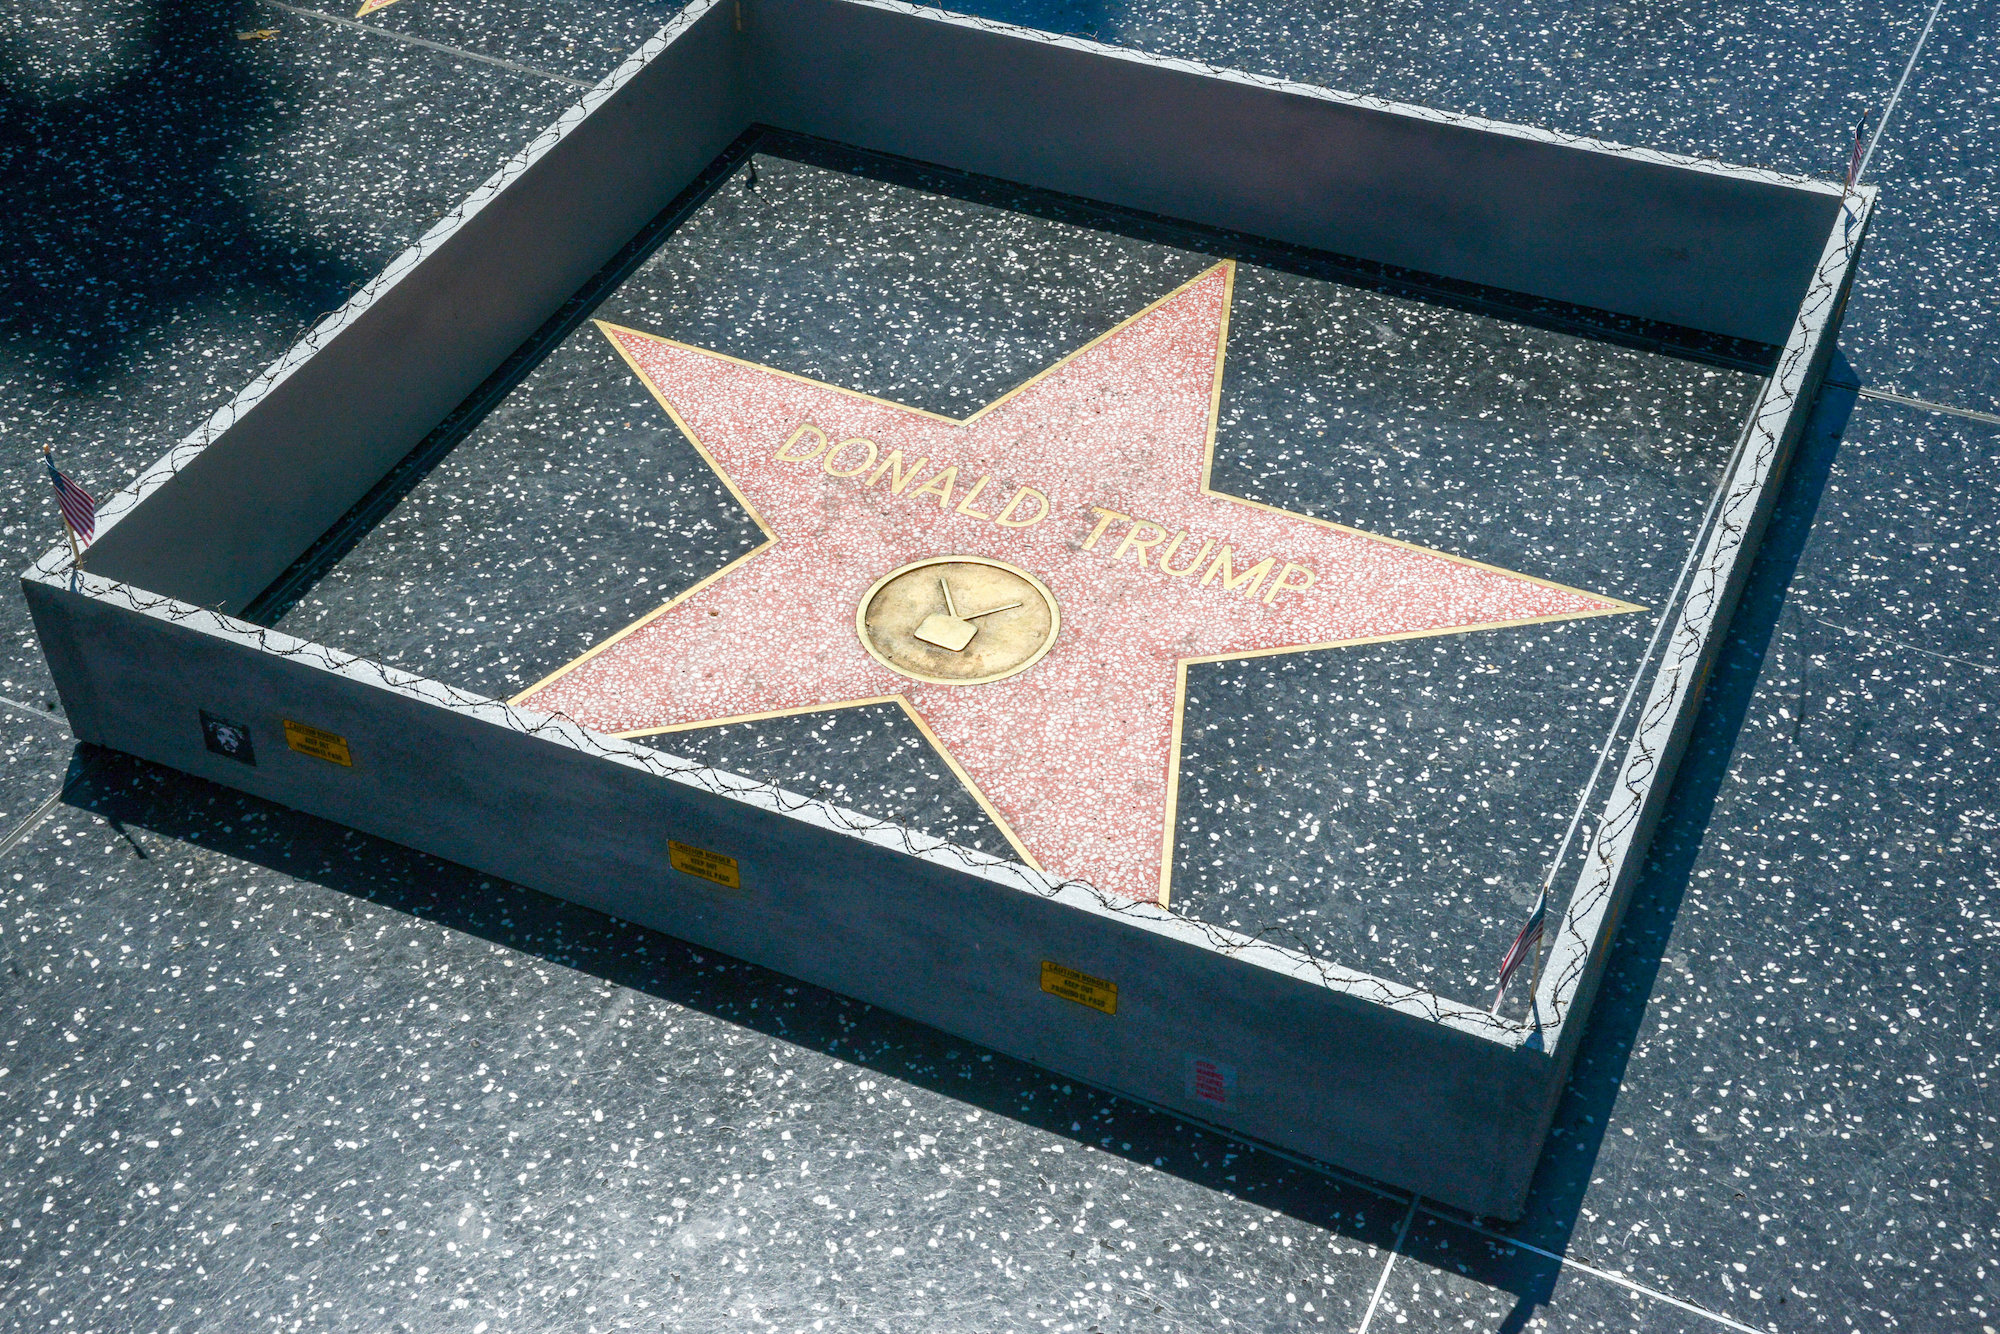 """Hollywood sightseeers on the famous walk of fame were confronted with an unusual edition to Trump's Famous Star. Someone had built a 6"""" tall grey concrete wall around it. Complete with """"Keep out"""" signs and topped with razor wire. The unofficial addtion to the icon star appeared early Tuesday afternoon, to the amusement of onlookers. There was no word as to who created the humorous installation. However the miniture wall was adorned with """"STOP MAKING STUPID PEOPLE FAMOUS"""" which is believed to be the work of LA Street artist Plastic Jesus."""